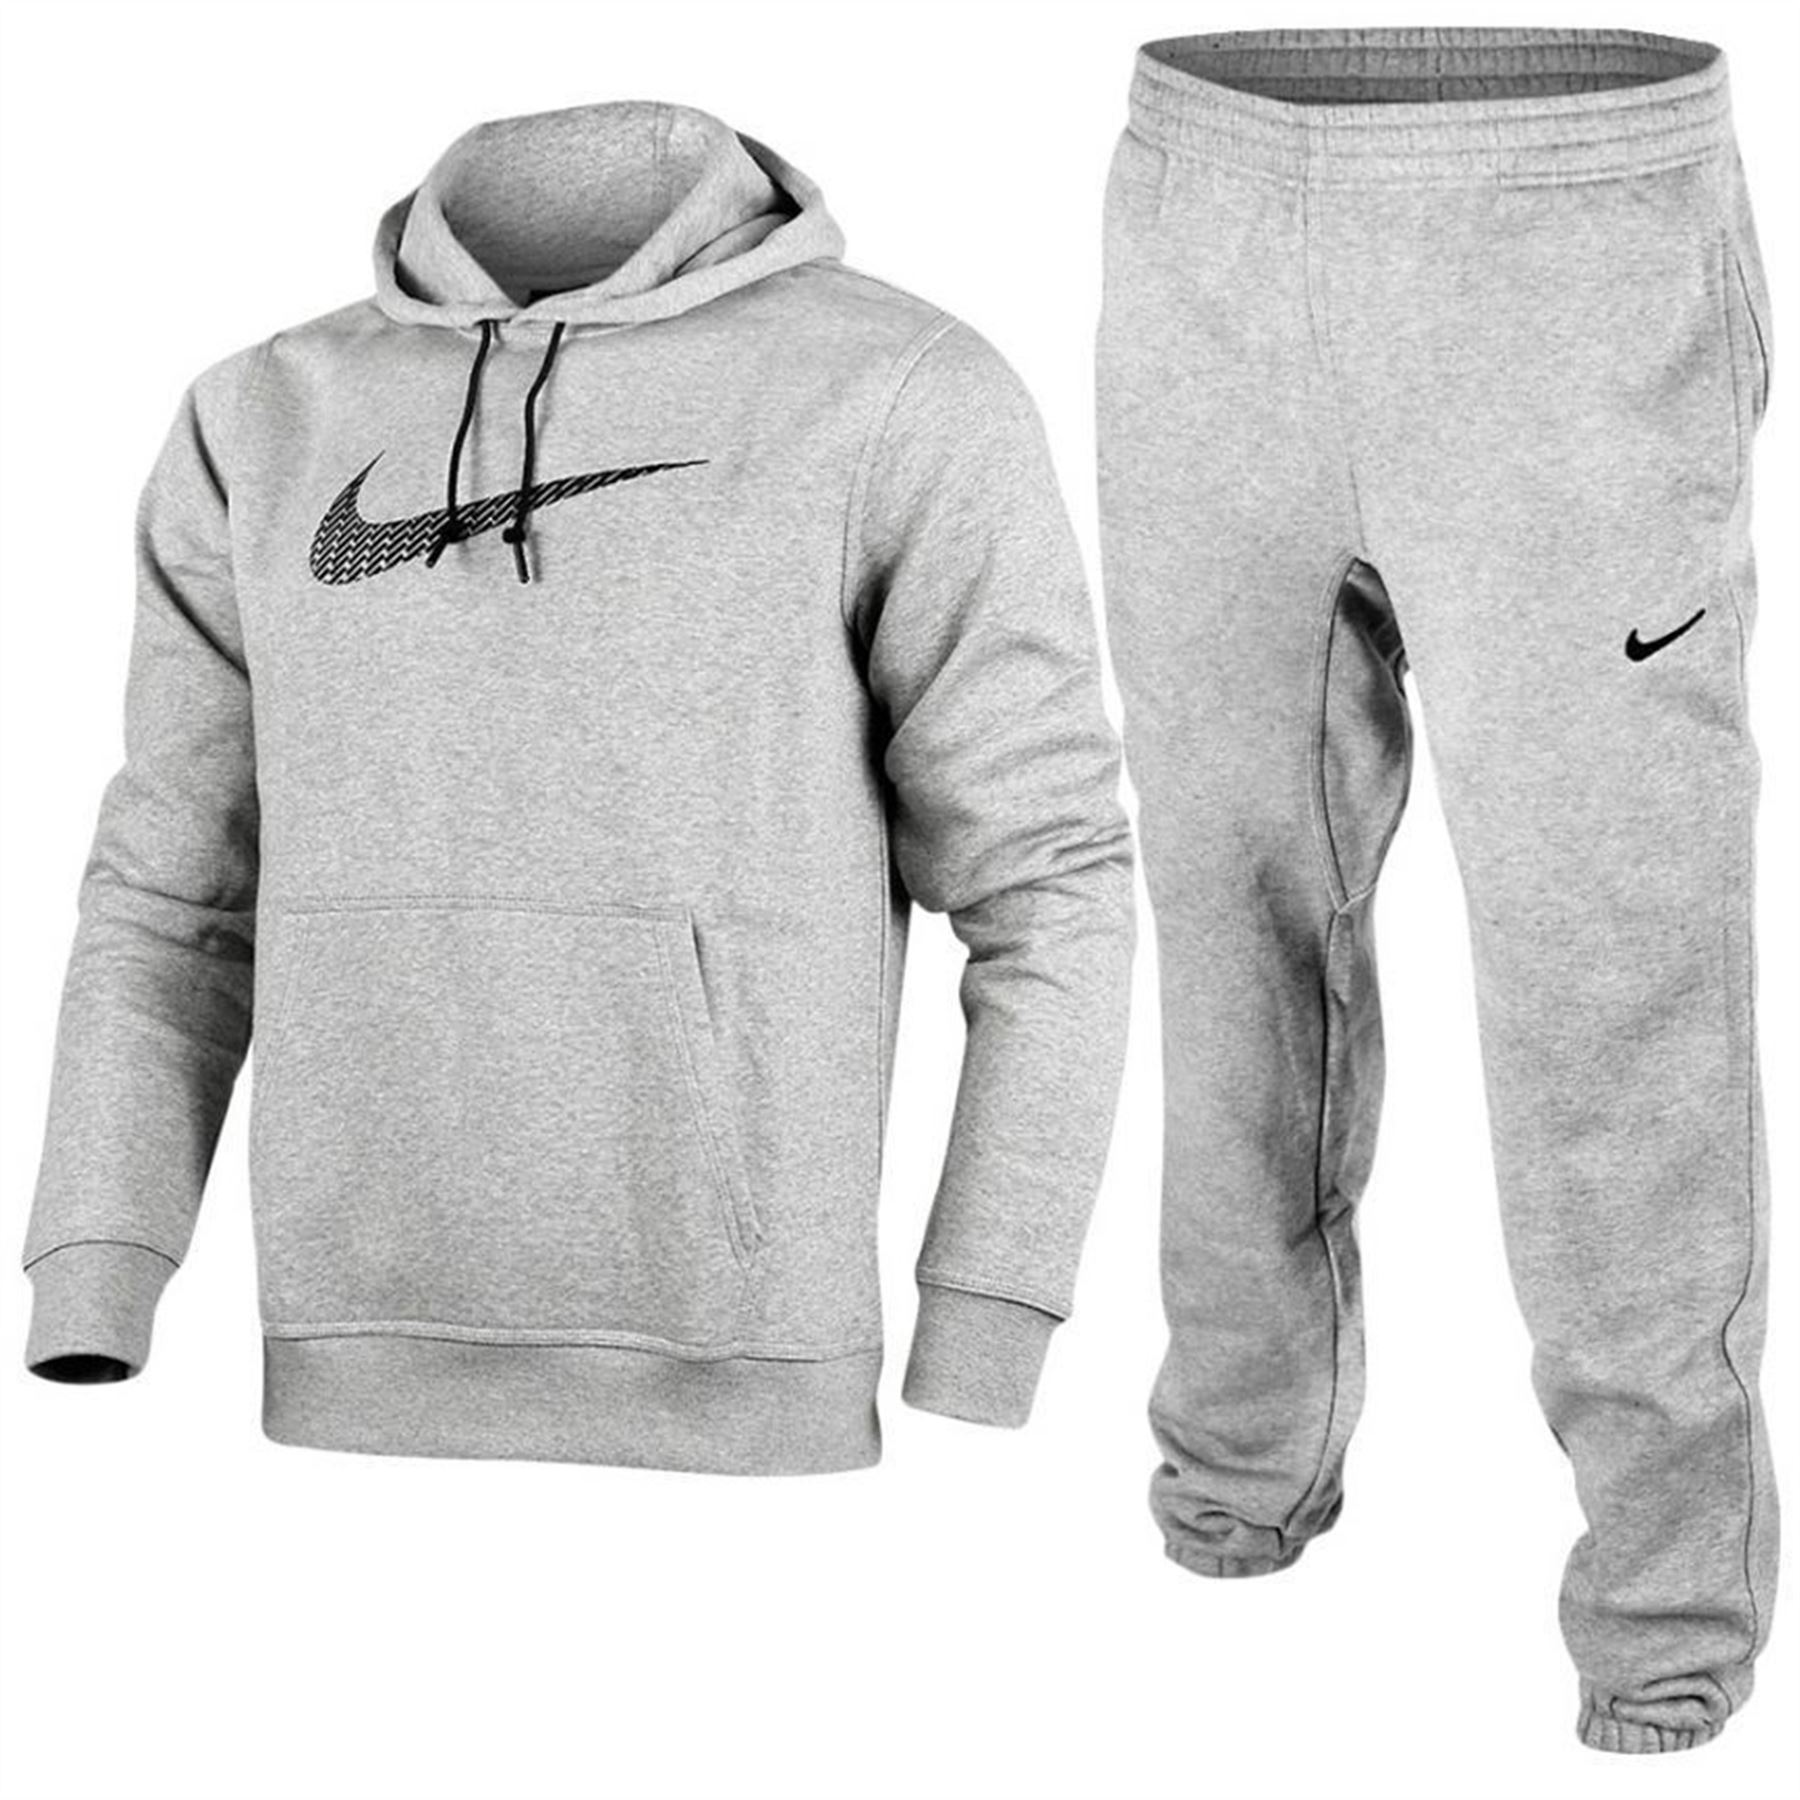 nike mens swoosh fleece overhead hoodie sweatshirt jogging bottom full tracksuit ebay. Black Bedroom Furniture Sets. Home Design Ideas